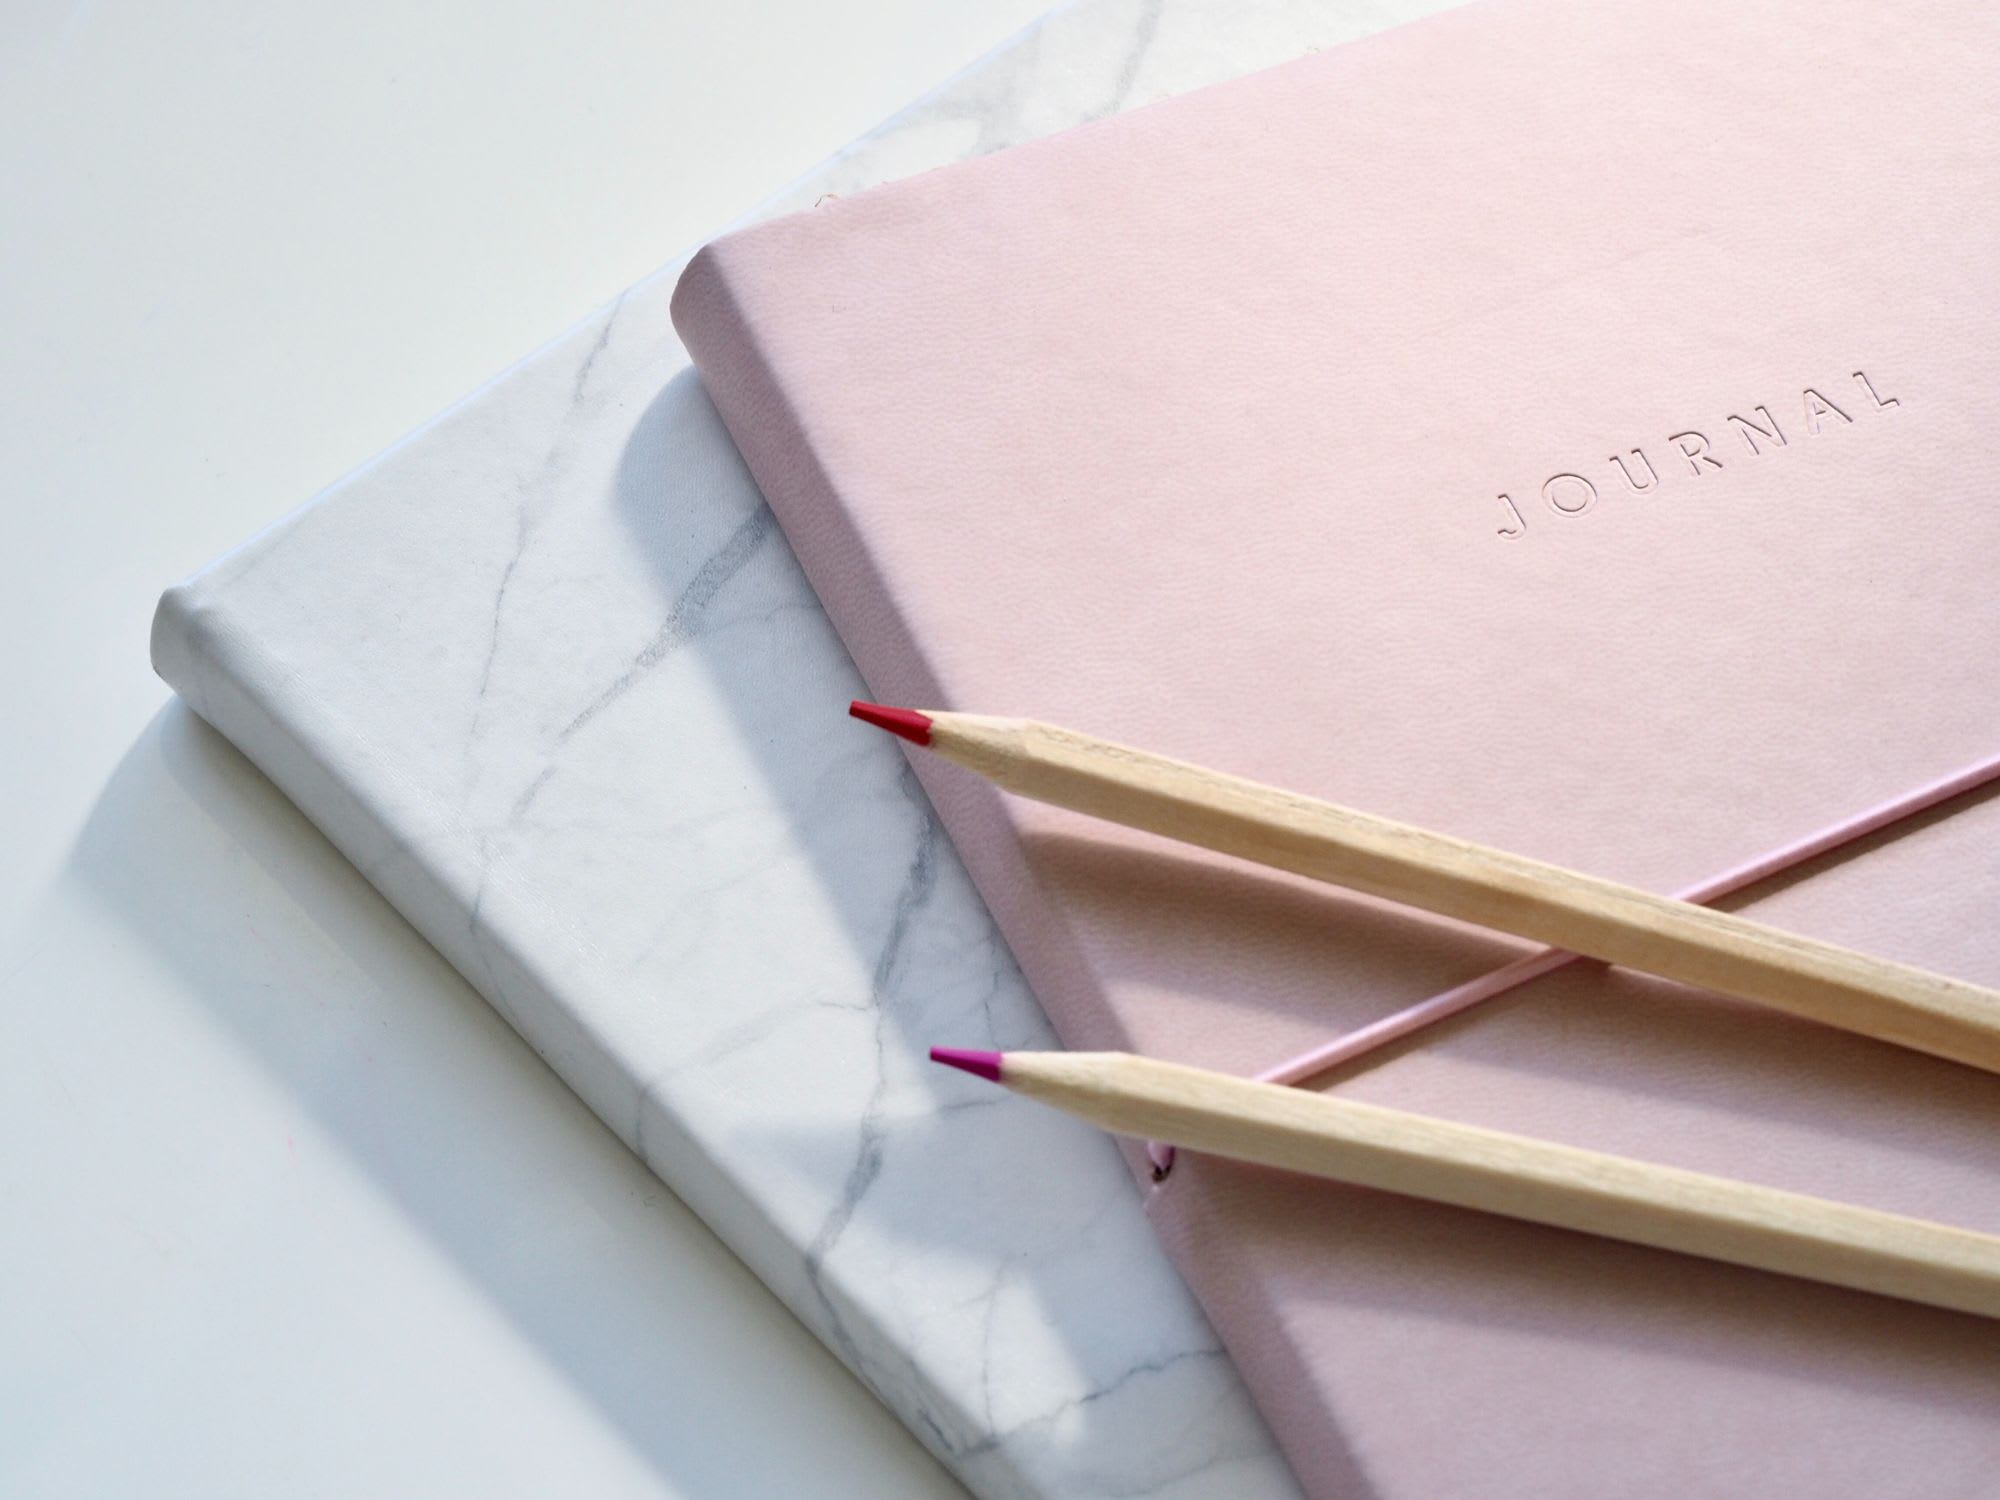 Bullet journal tools notebook and pen